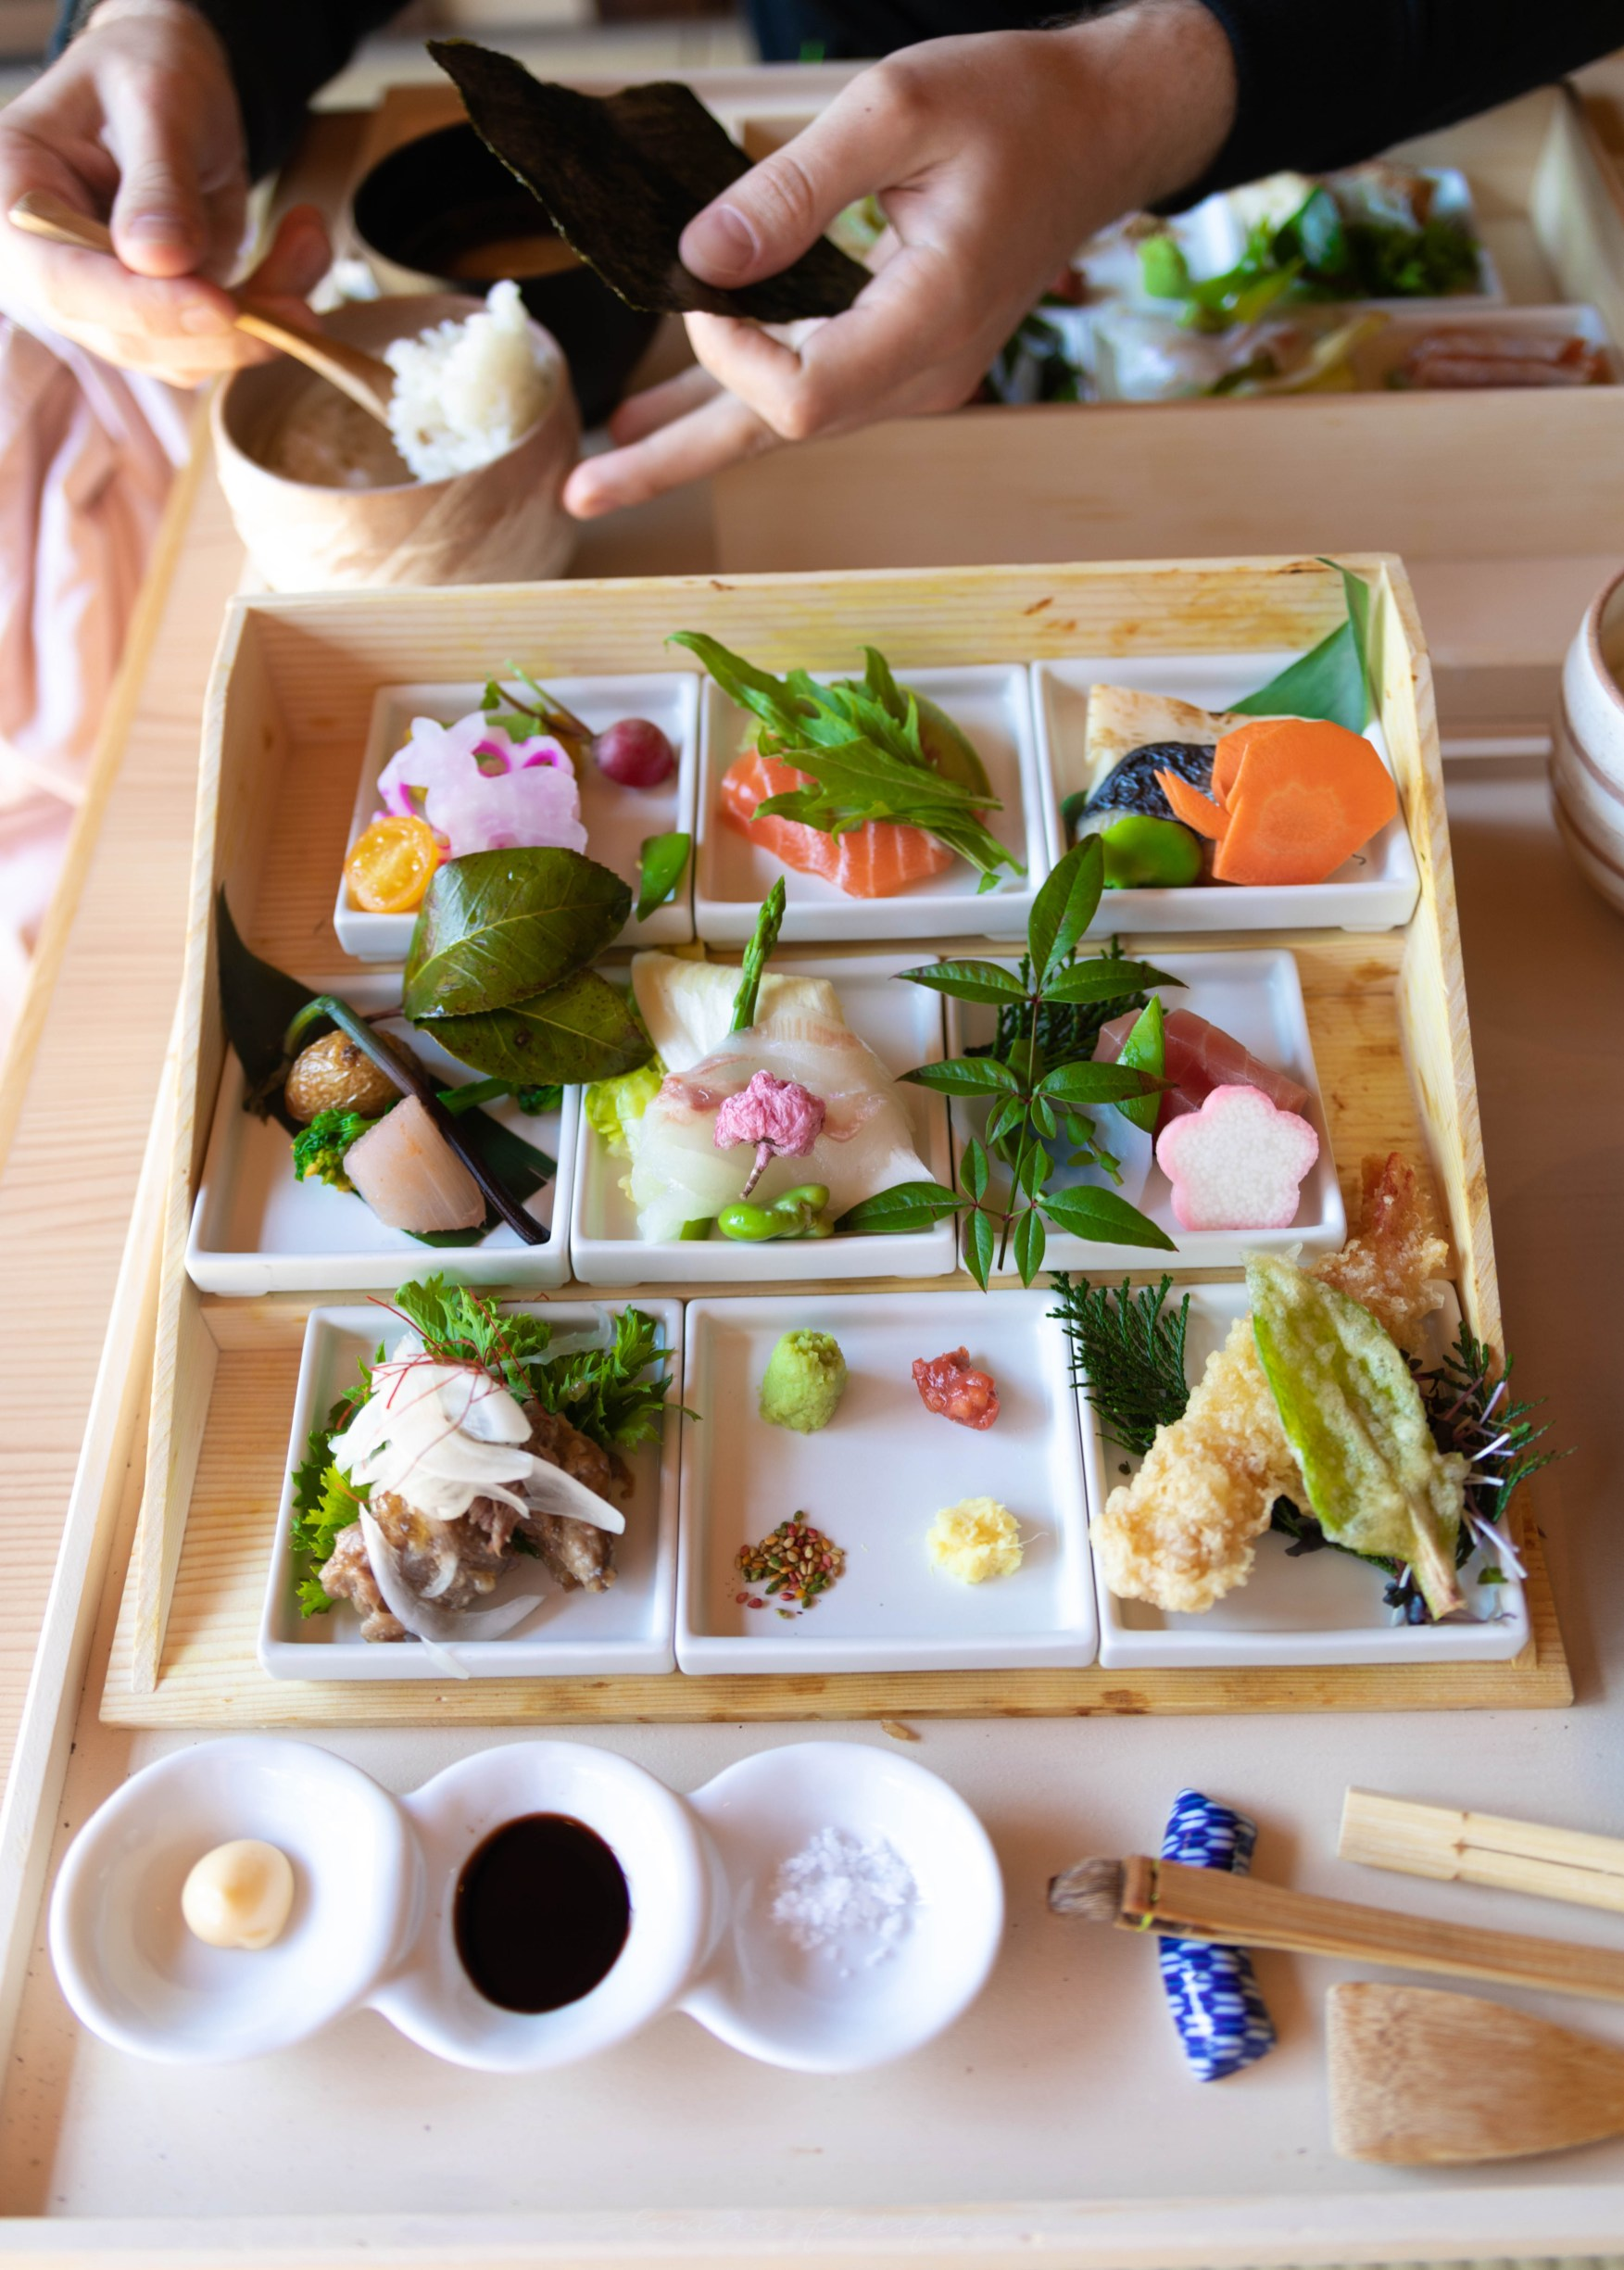 Luxury Restaurants Of The World Syoka Te Ori Sushi In Nara